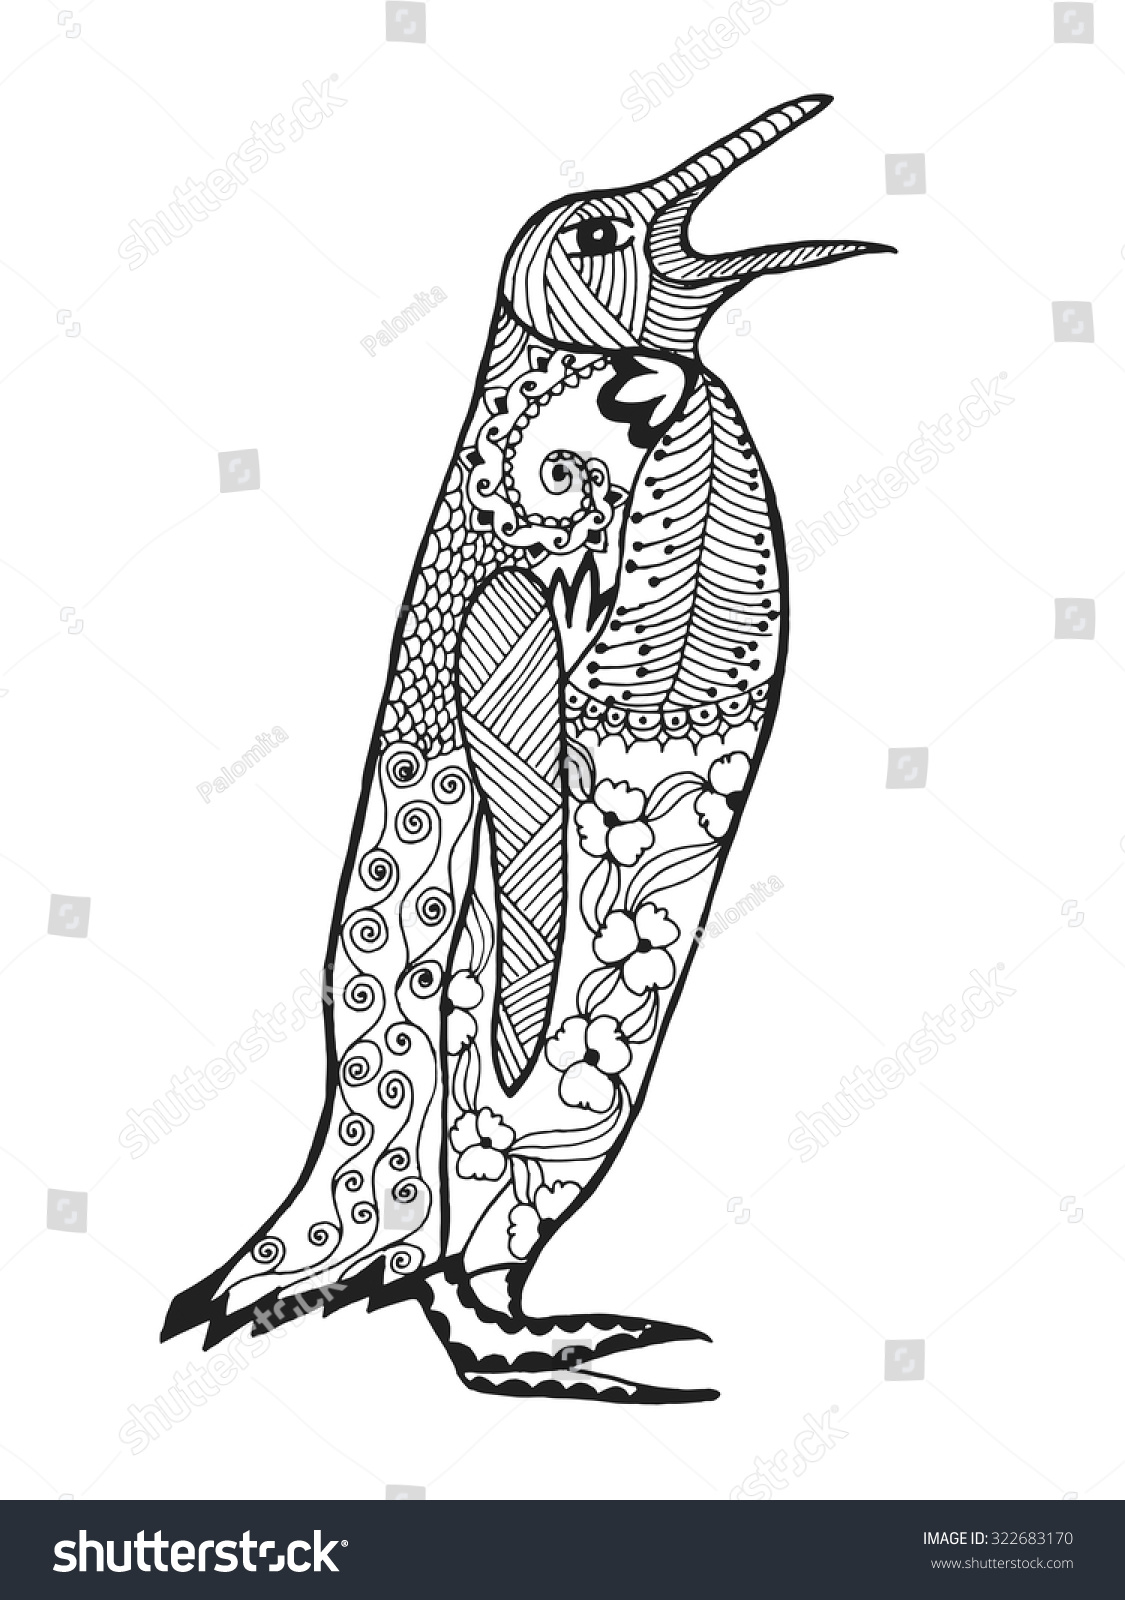 Cute penguin adult antistress coloring page stock vector for Penguin adult coloring pages